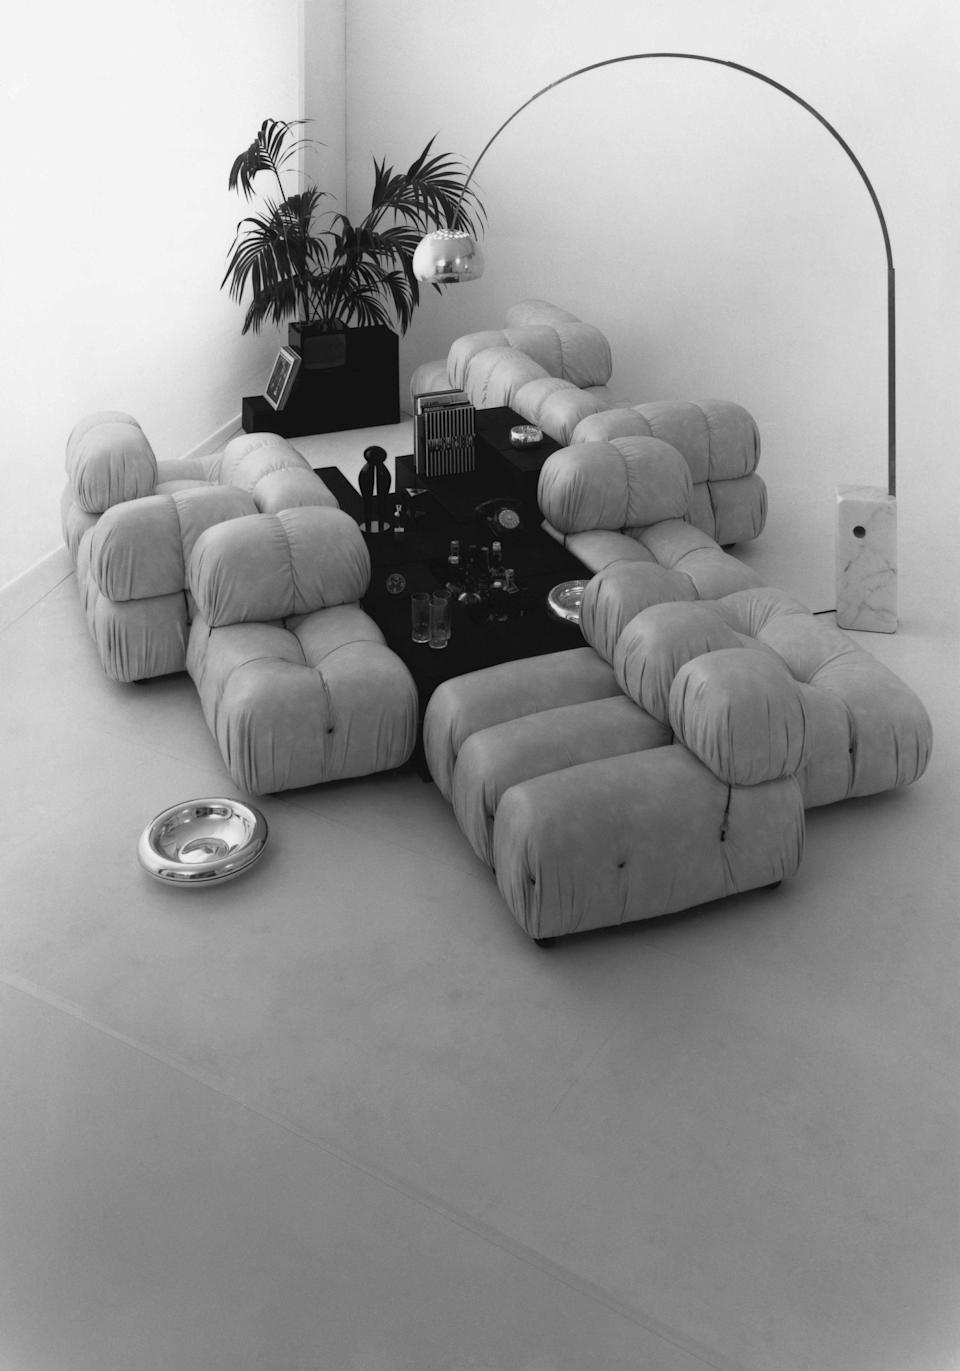 Mario Bellini's Camaleonda sofa, shown in a 1971 B&B Italia advertising campaign.